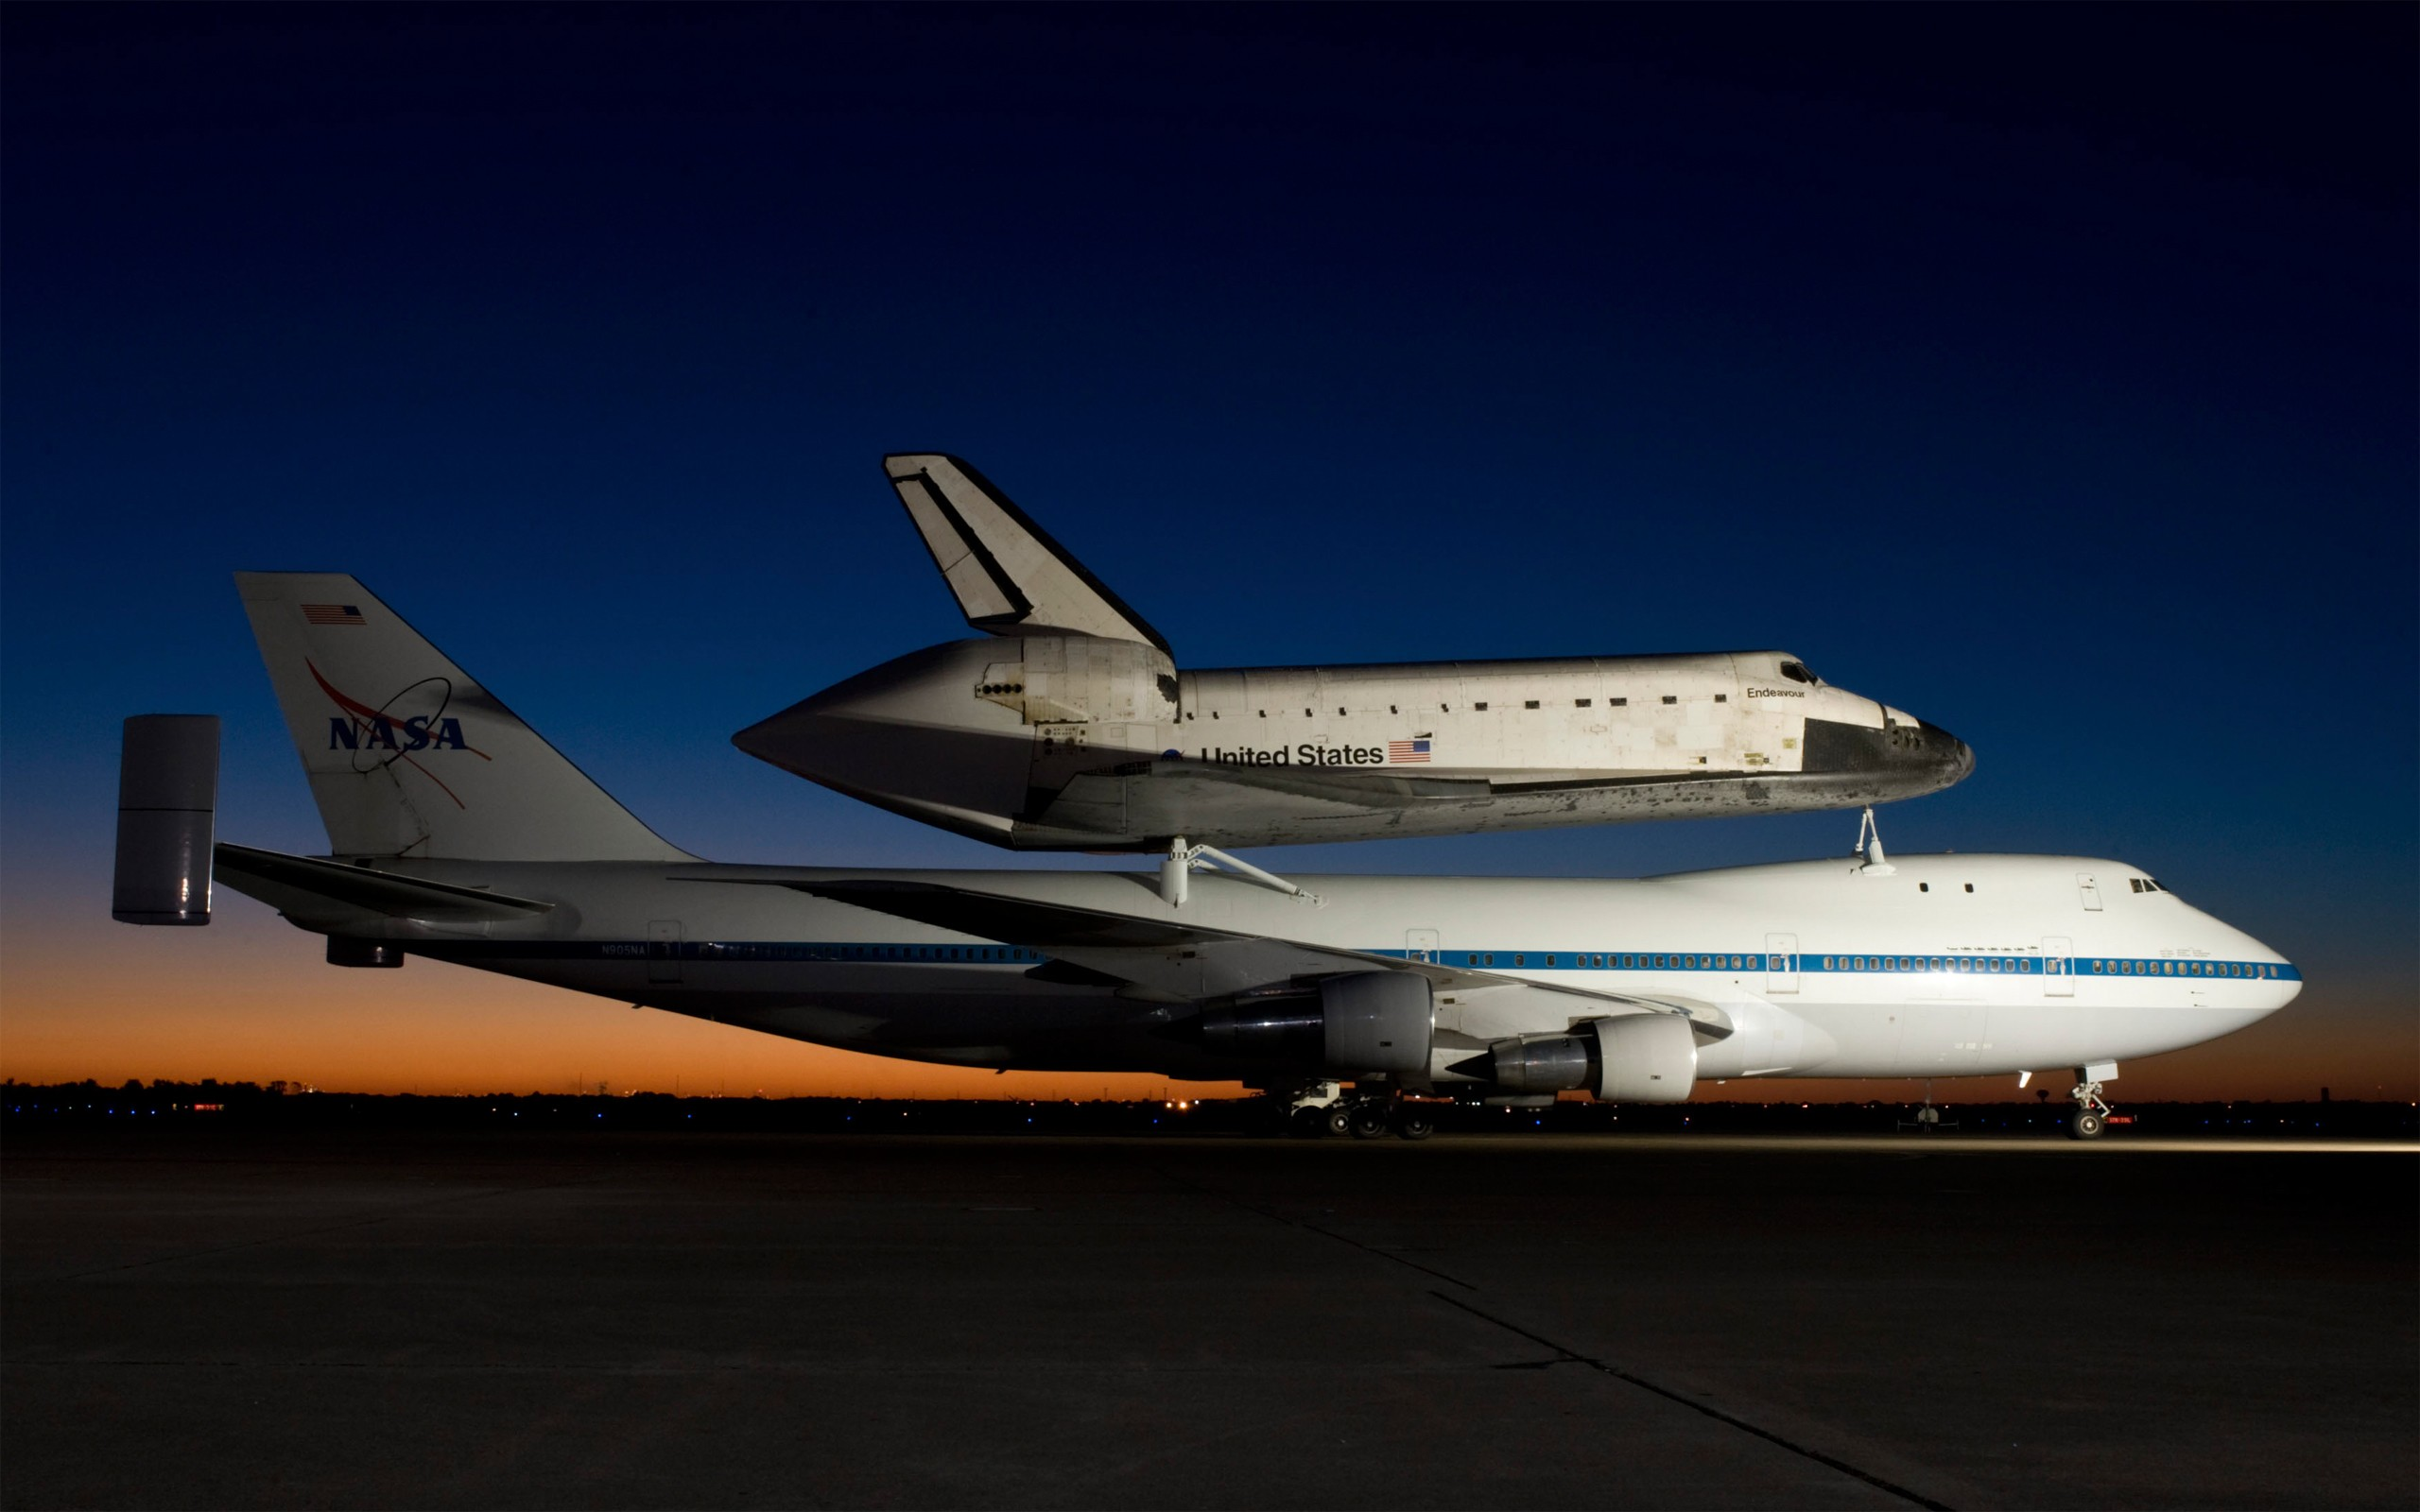 Space Shuttle Endeavour   Wallpaper 39954 2560x1600